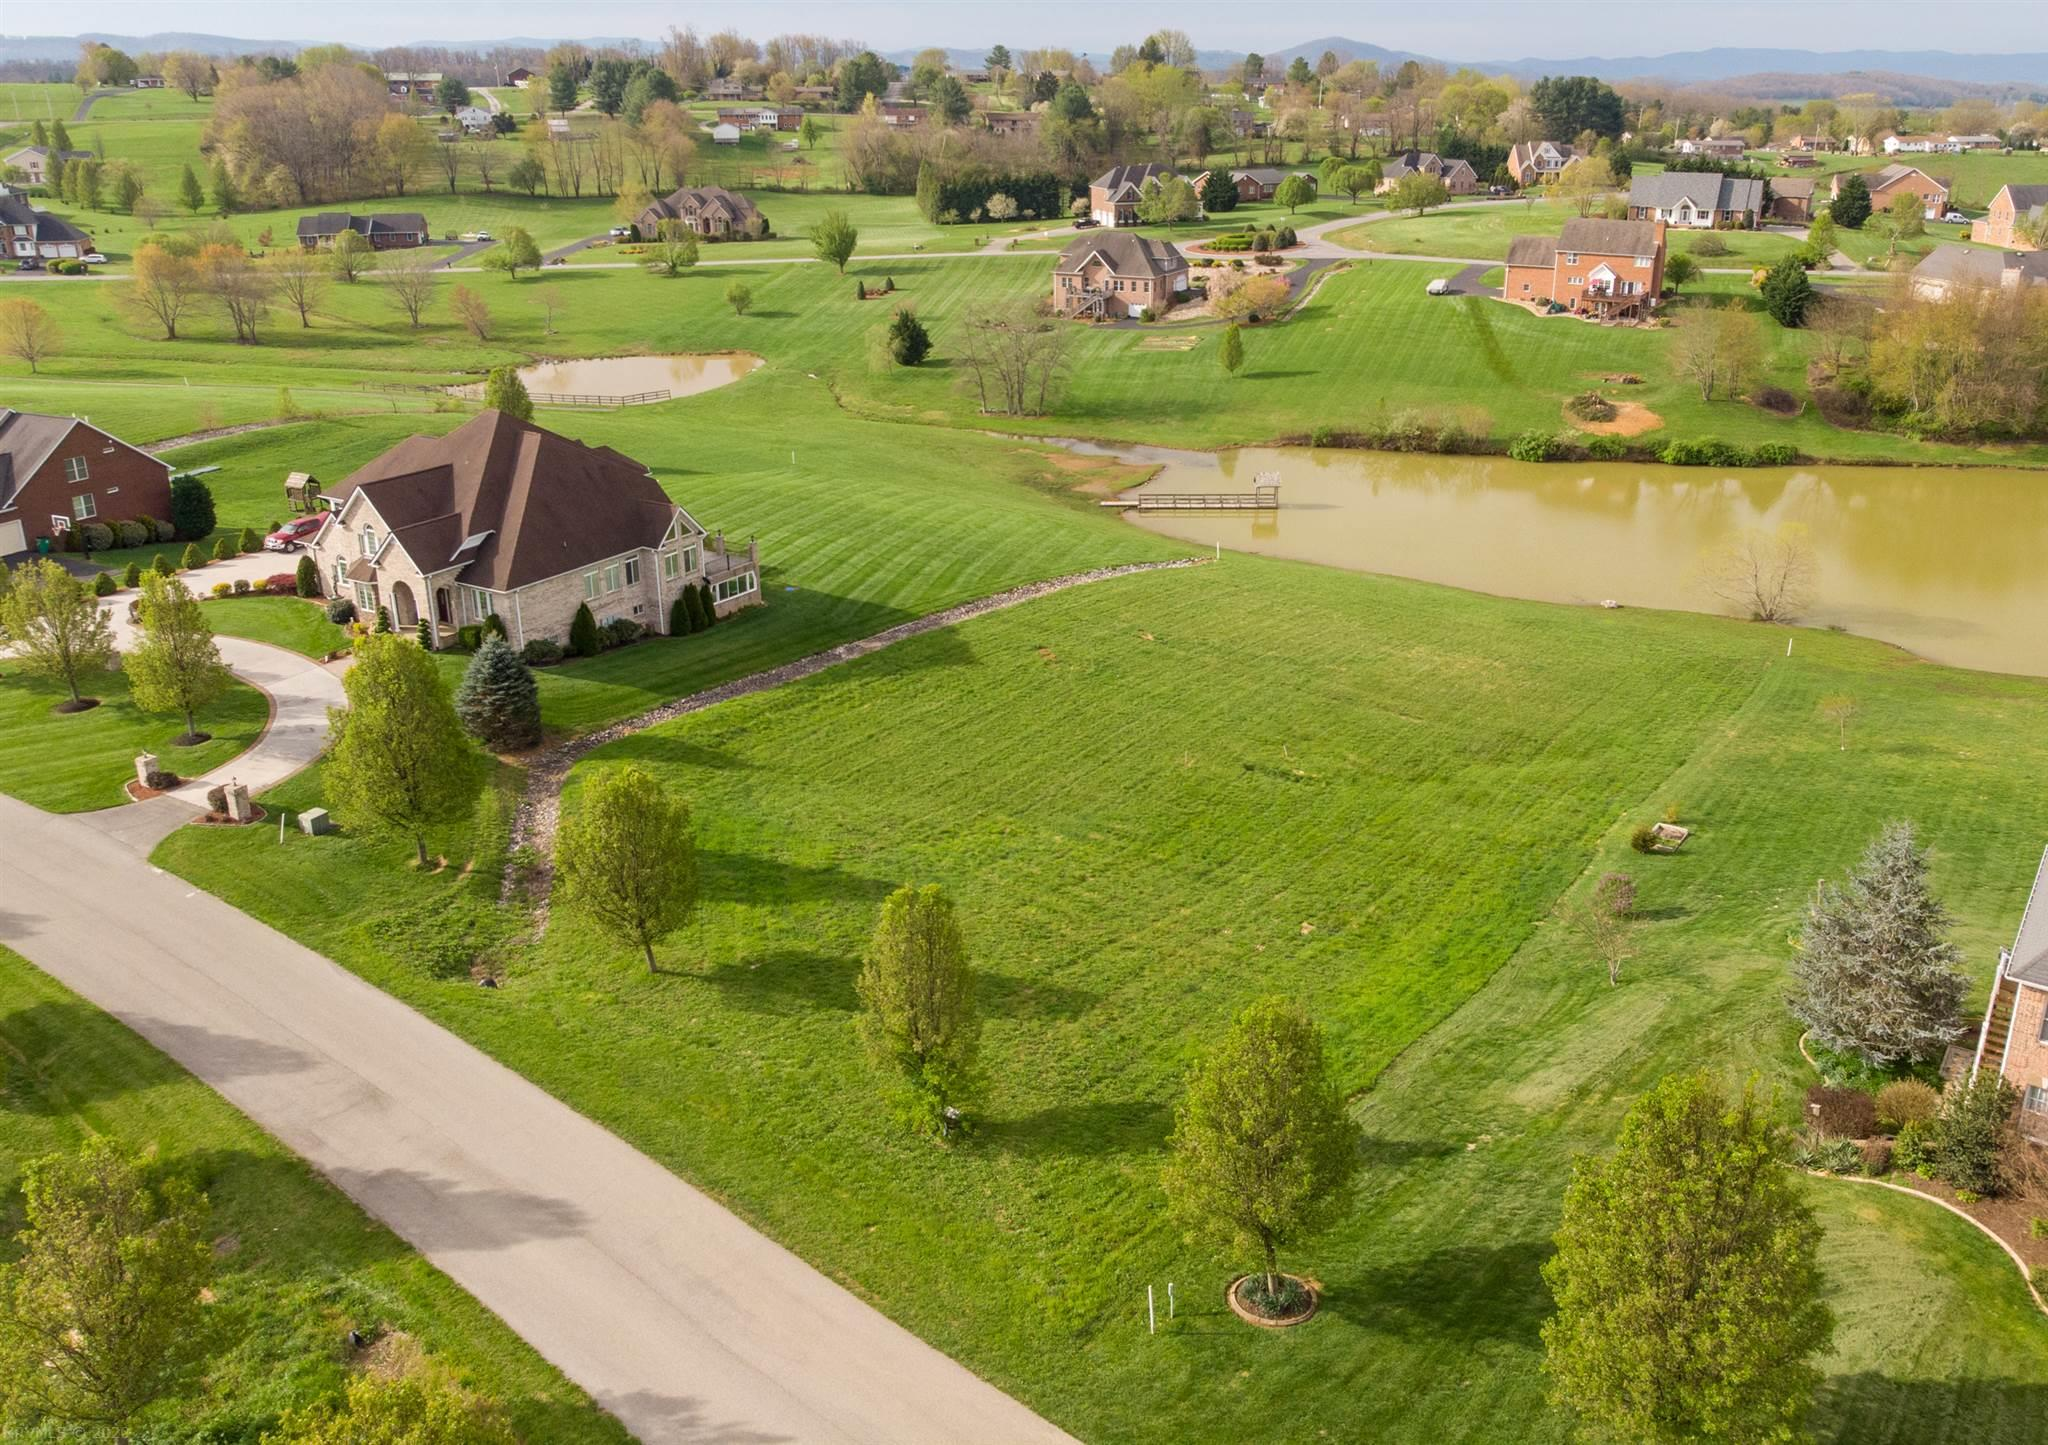 Build your dream home on this beautiful 1+ acre lot in highly sought after Heritage Place! This is the last remaining lot with waterfront access, which also boasts outstanding views of the rolling hills and of the community lake. Town water is available and septic work on file. Don't miss your chance to call this prestigious neighborhood your home!  Seller is also a builder in case buyer is interested in having a gorgeous home built by GSC Custom Builders, LLC!